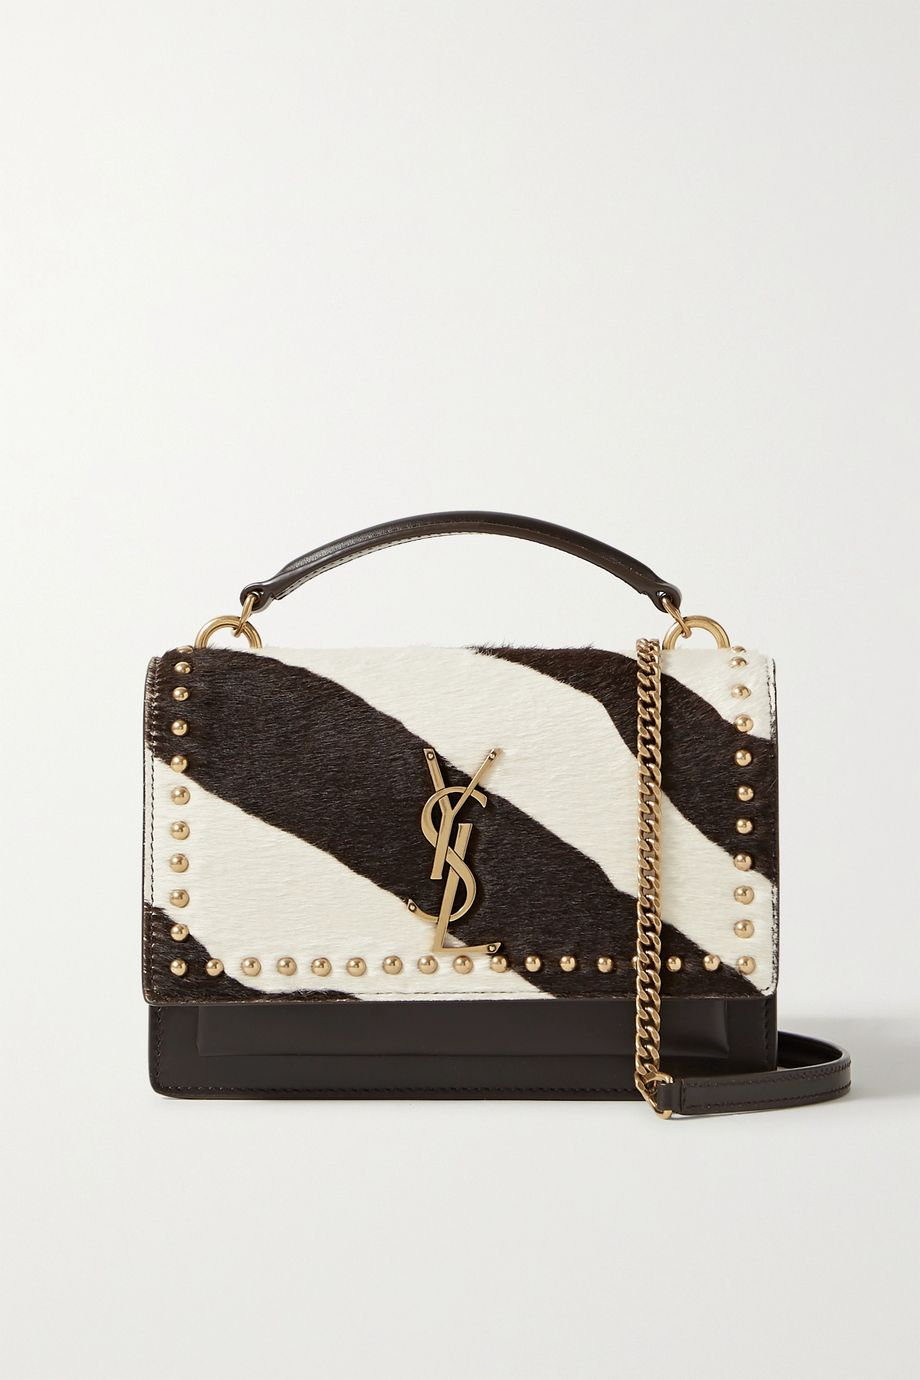 SAINT LAURENT Sunset small studded leather and zebra-print calf hair shoulder bag